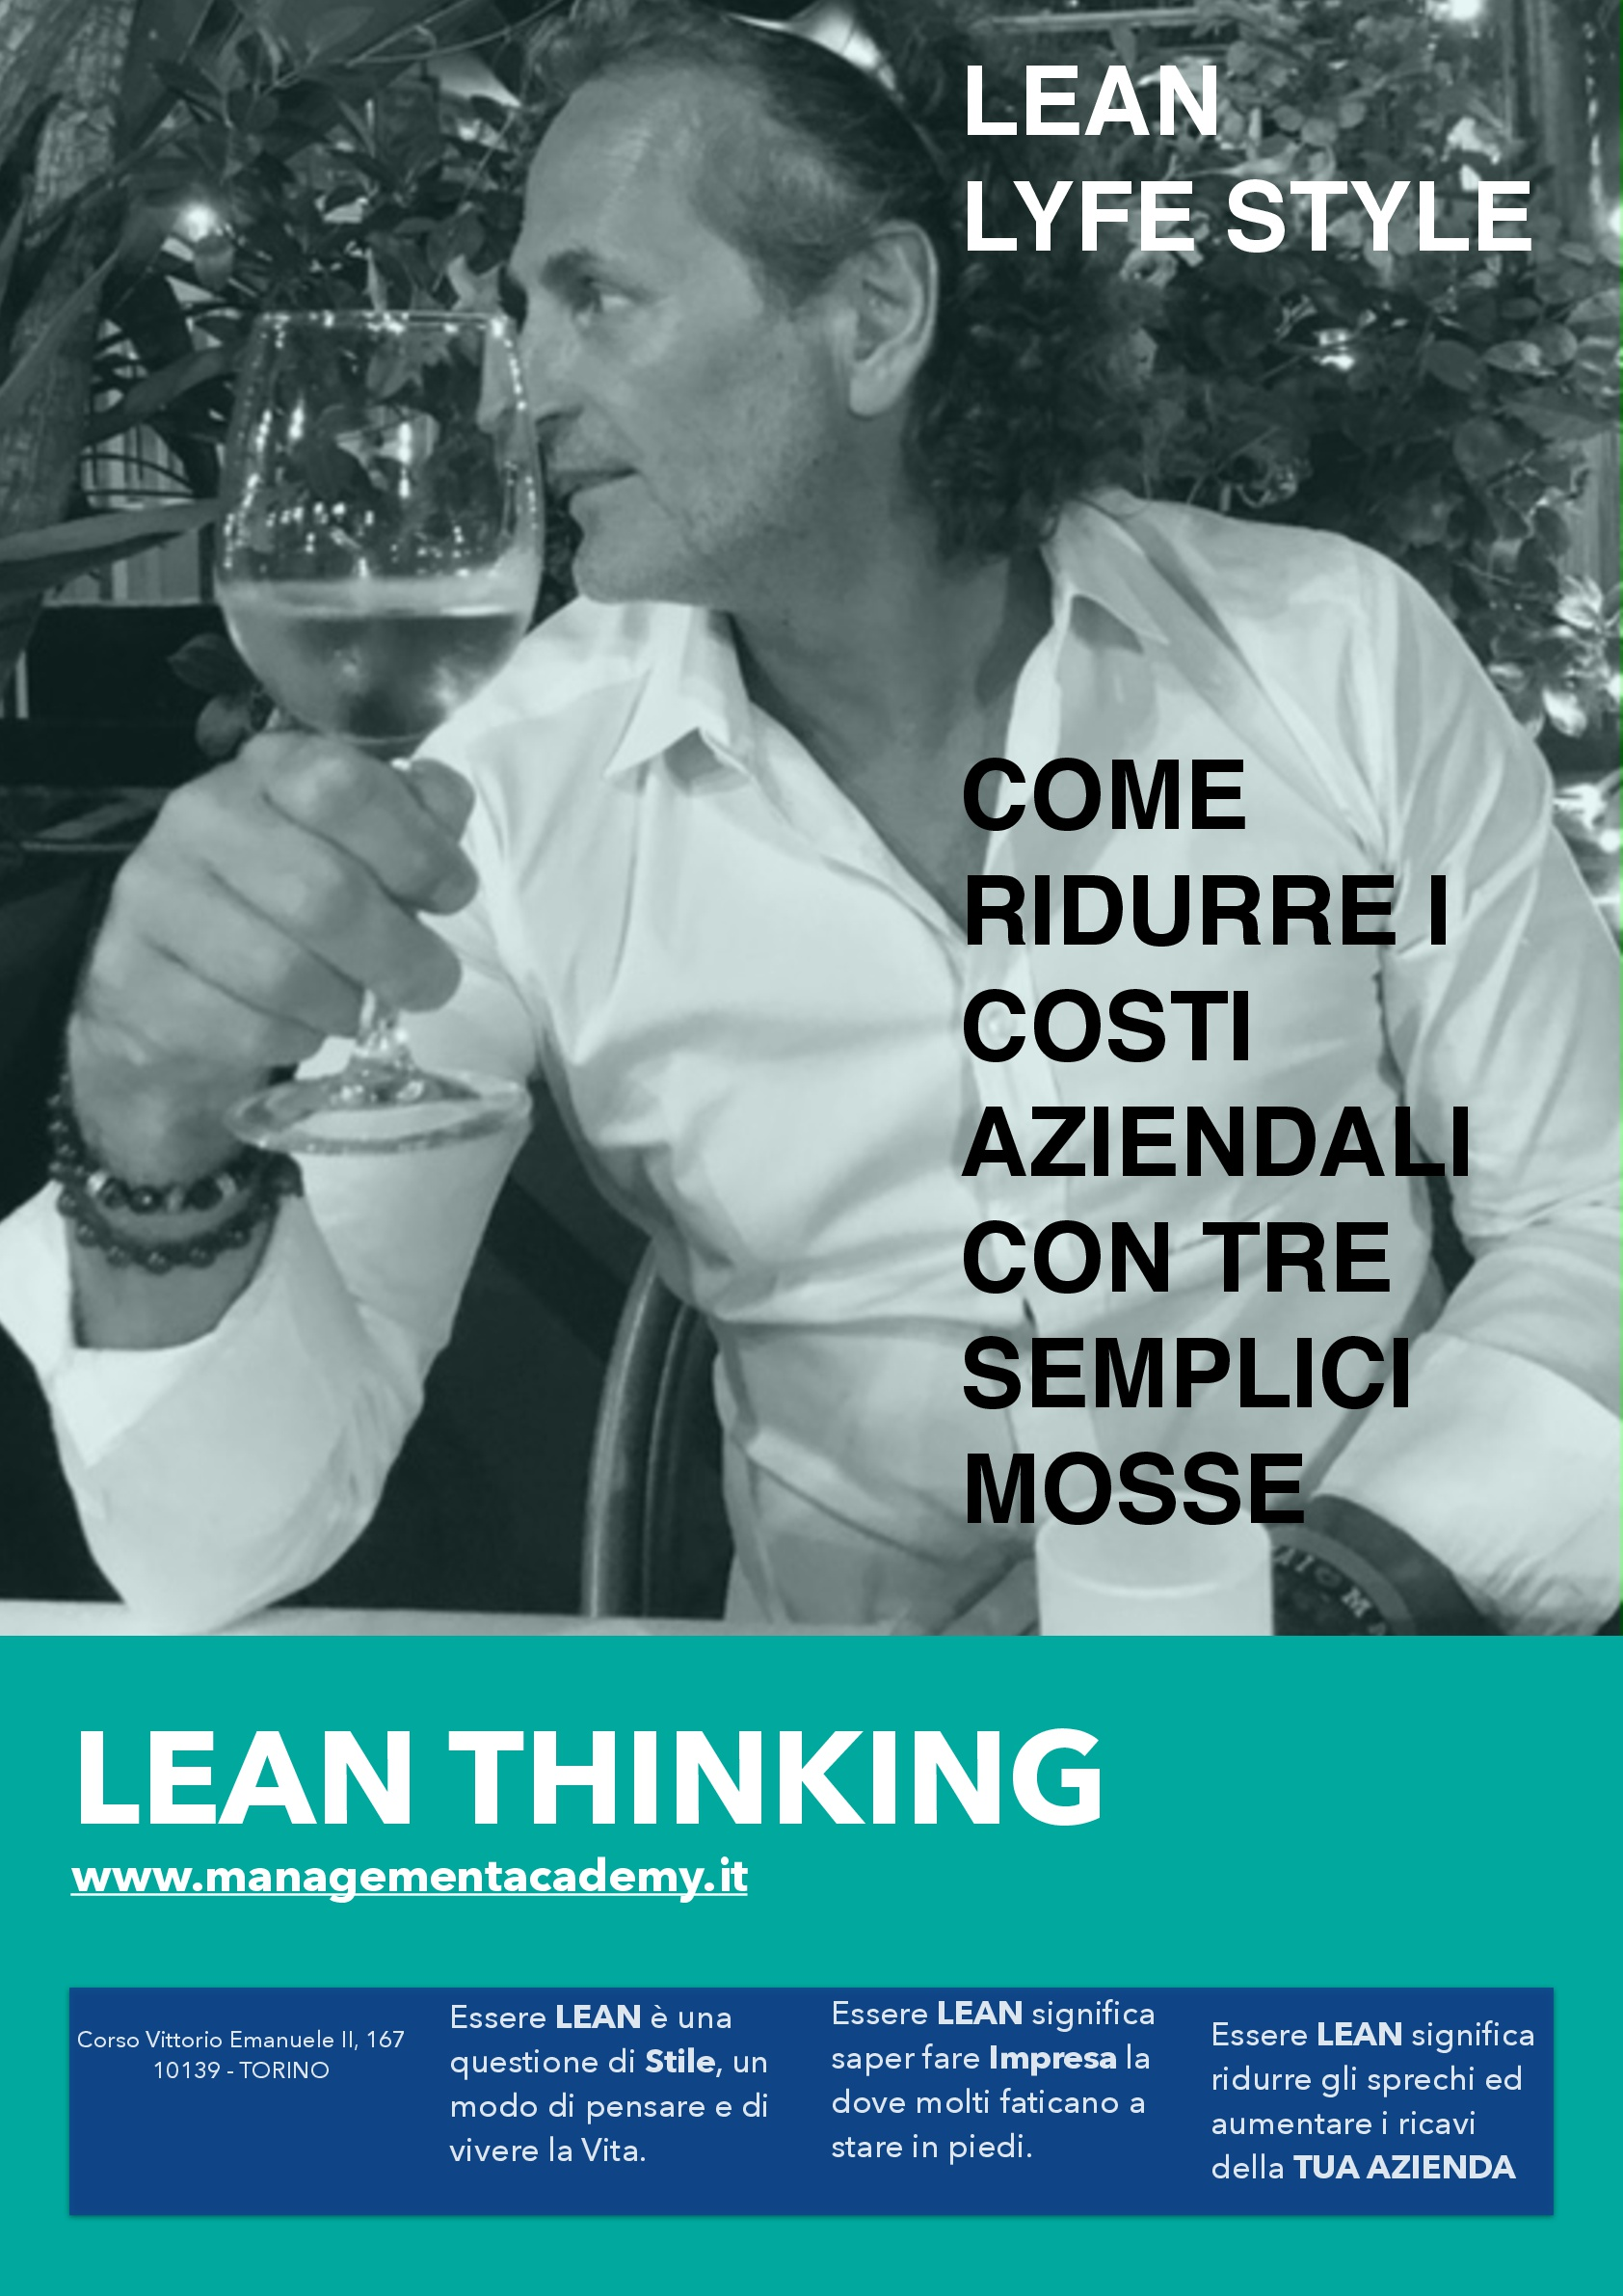 LEAN THINKING & LIFE STYLE